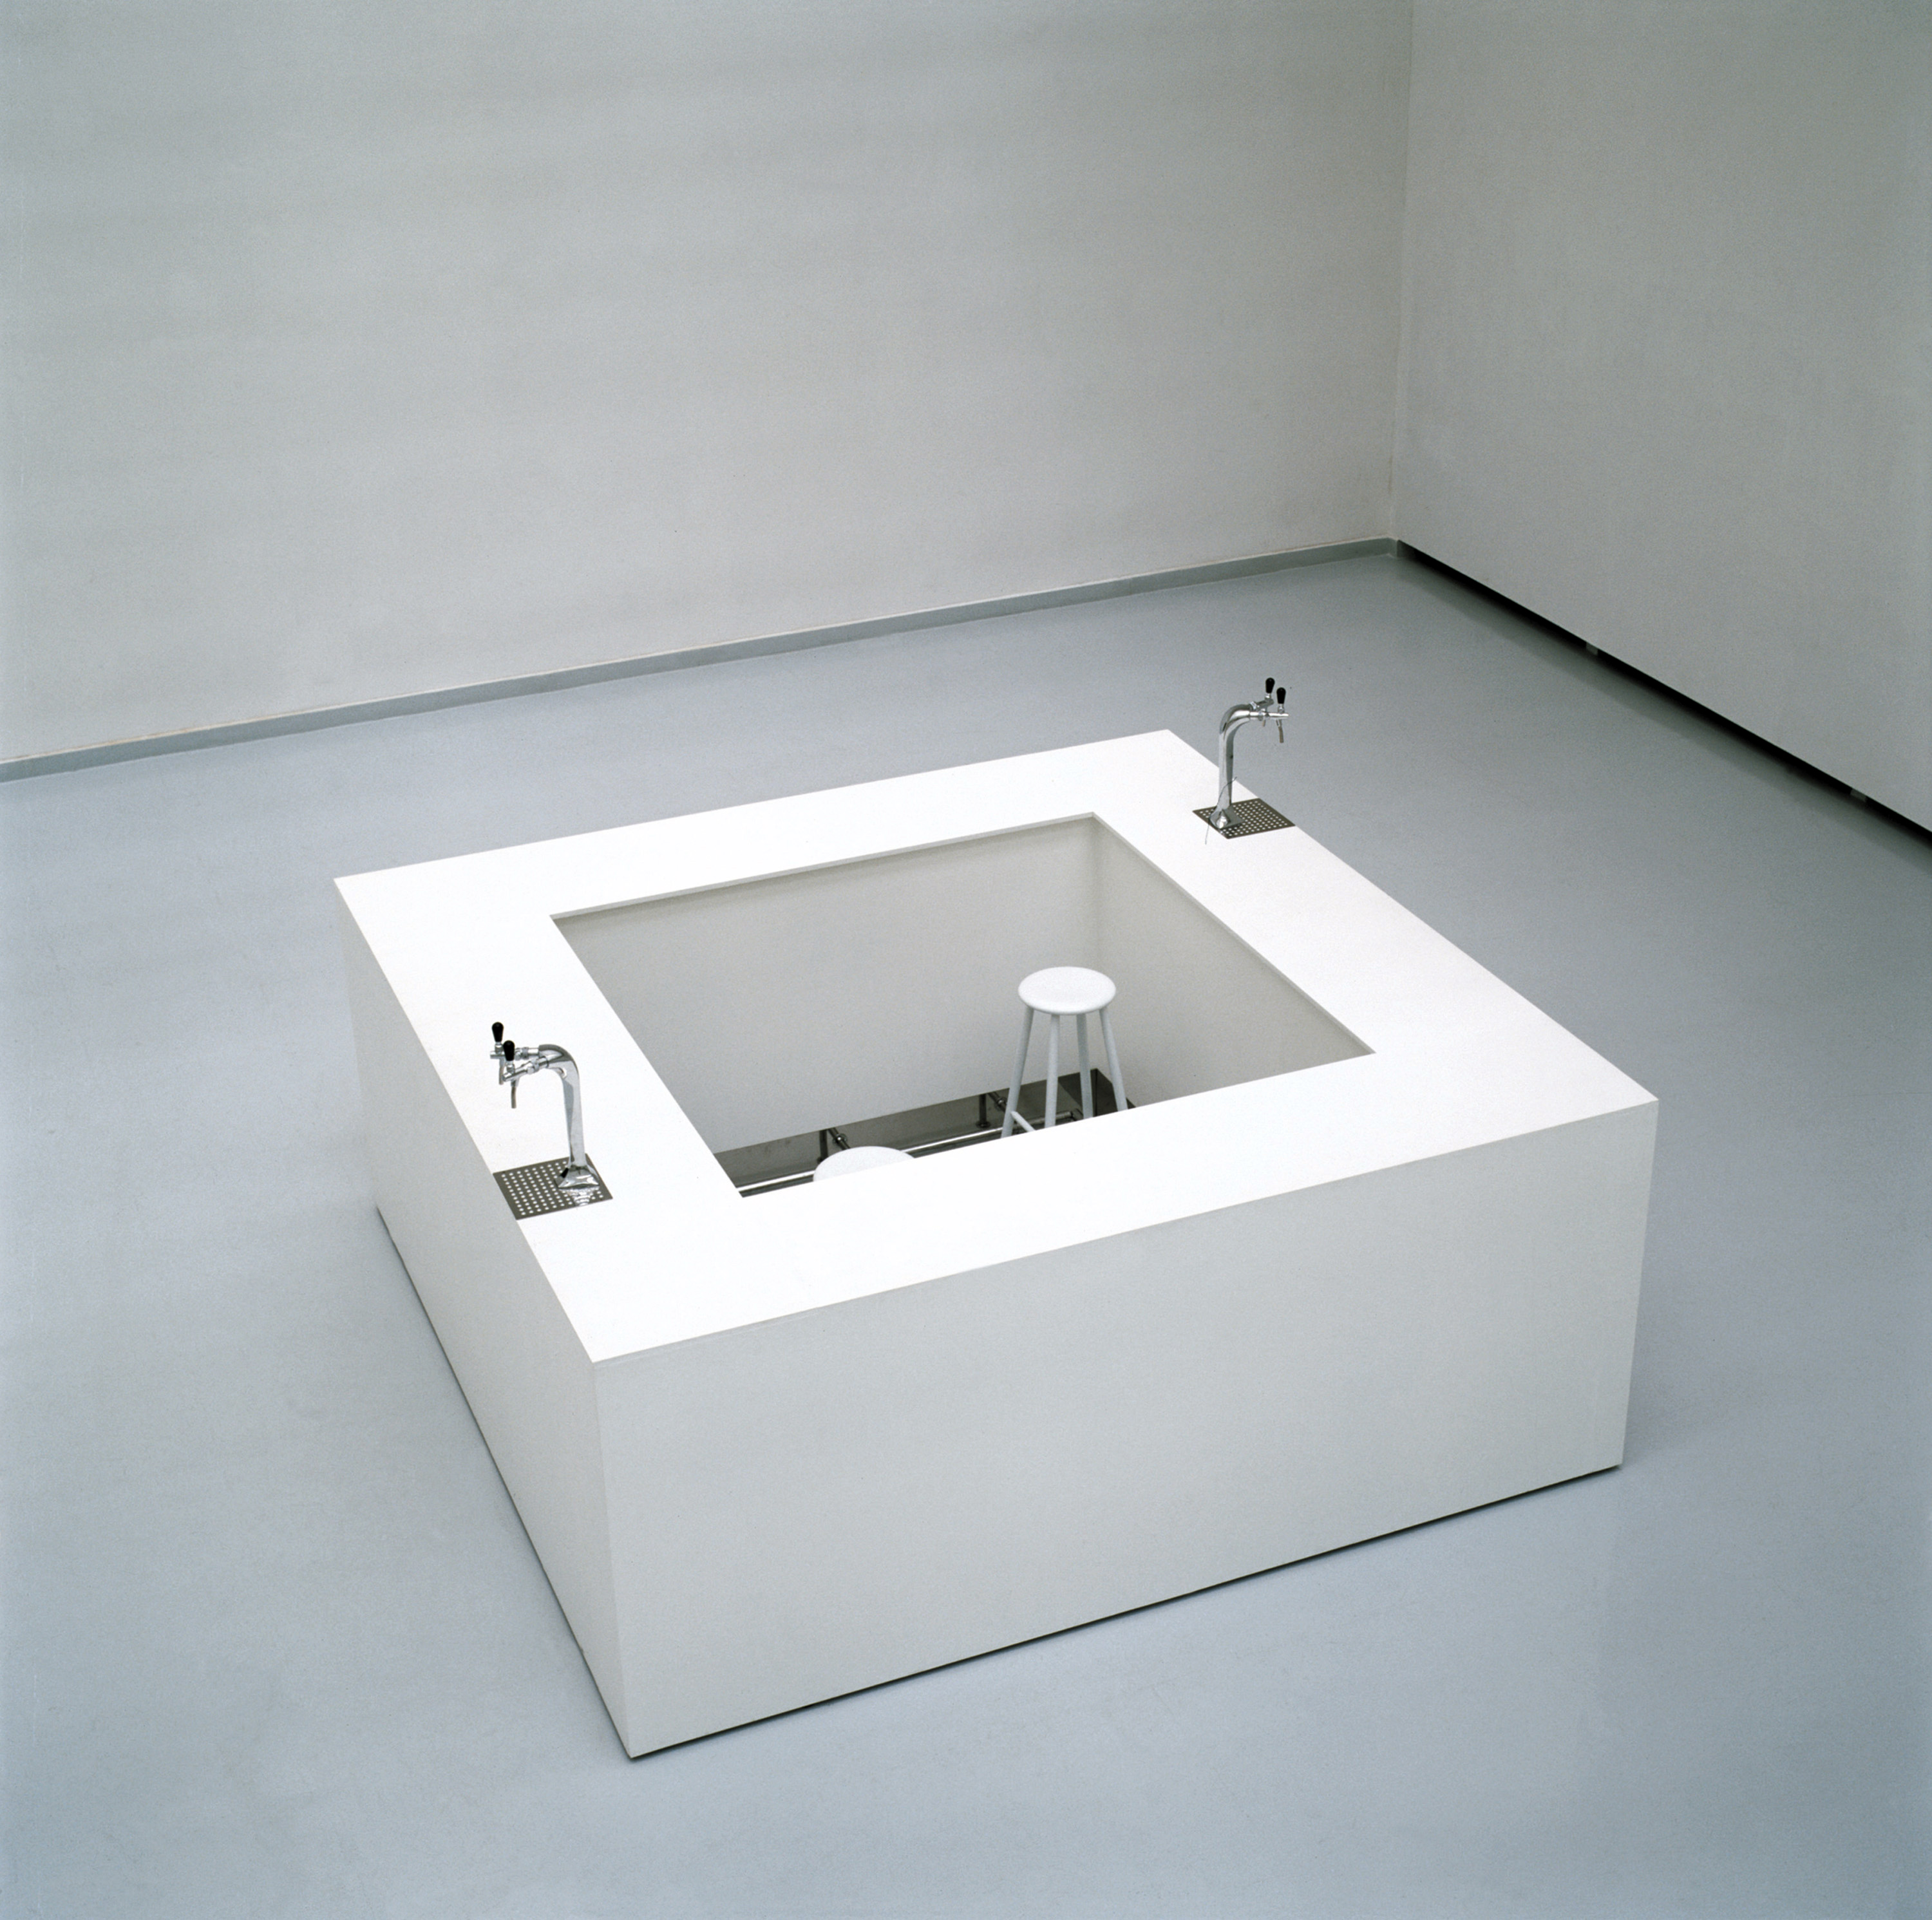 Elmgreen & Dragset | powerless structure, fig. 21 (queer bar), 1998